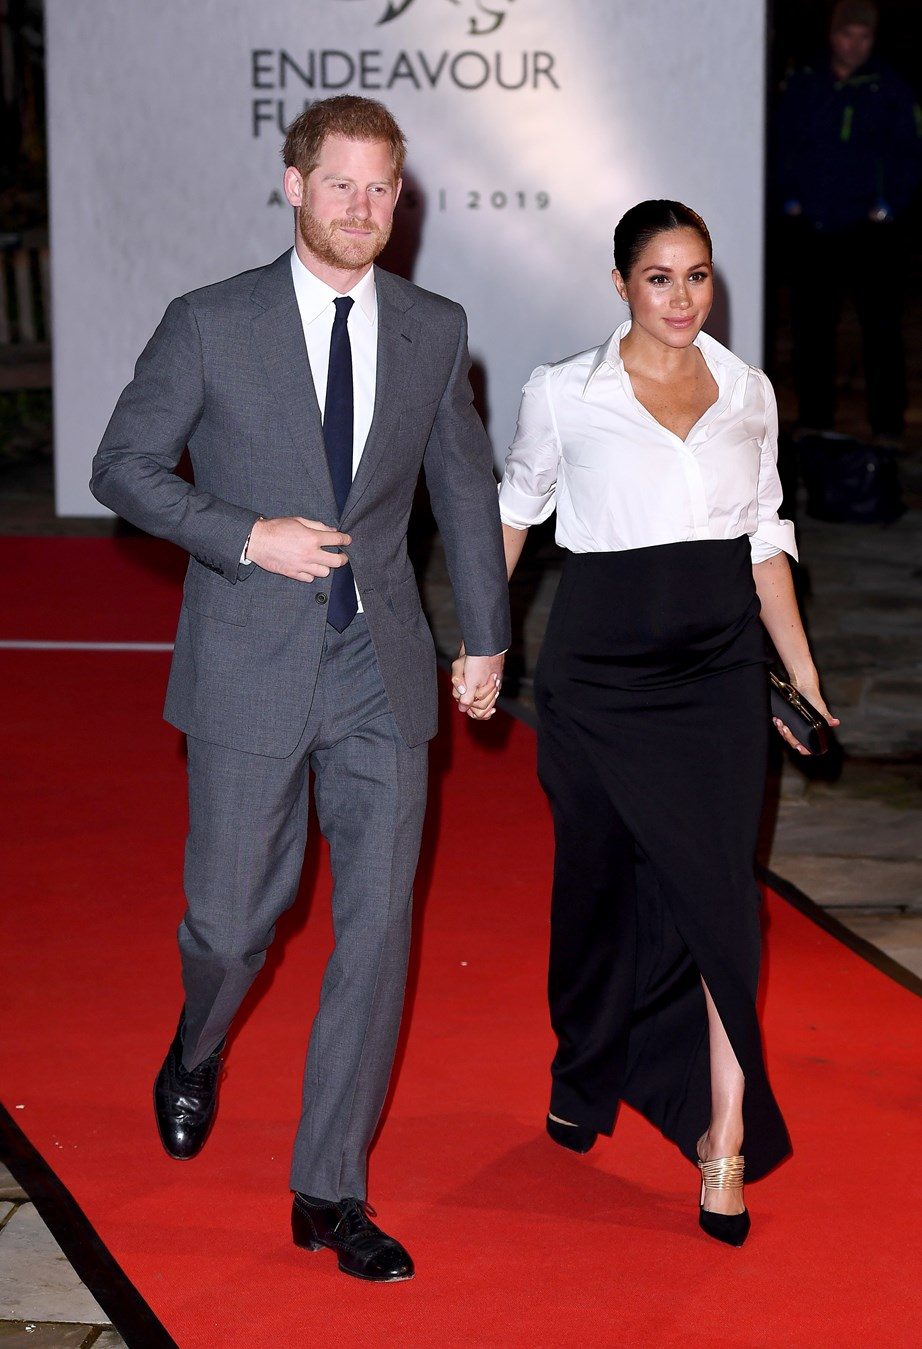 Harry and Meghan at the Endeavour Awards last year, when Meghan was seven months pregnant with Archie. *(Image: Getty)*